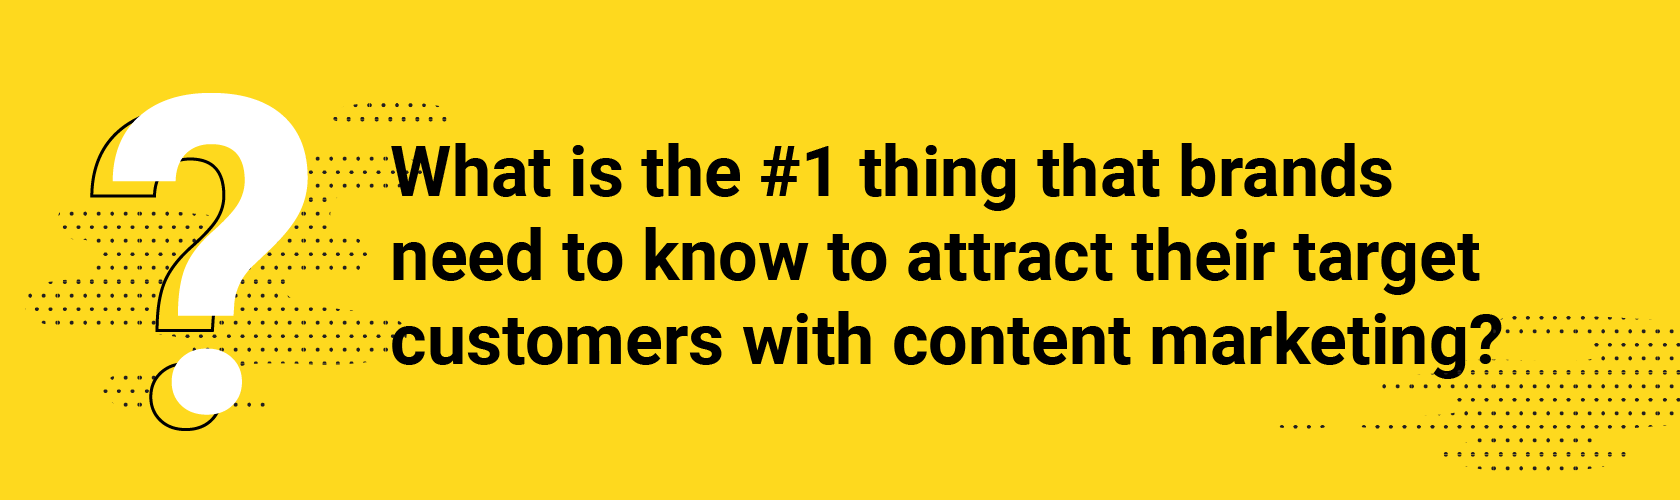 Q4. What is the #1 thing that brands need to know to attract their target customers with content marketing?